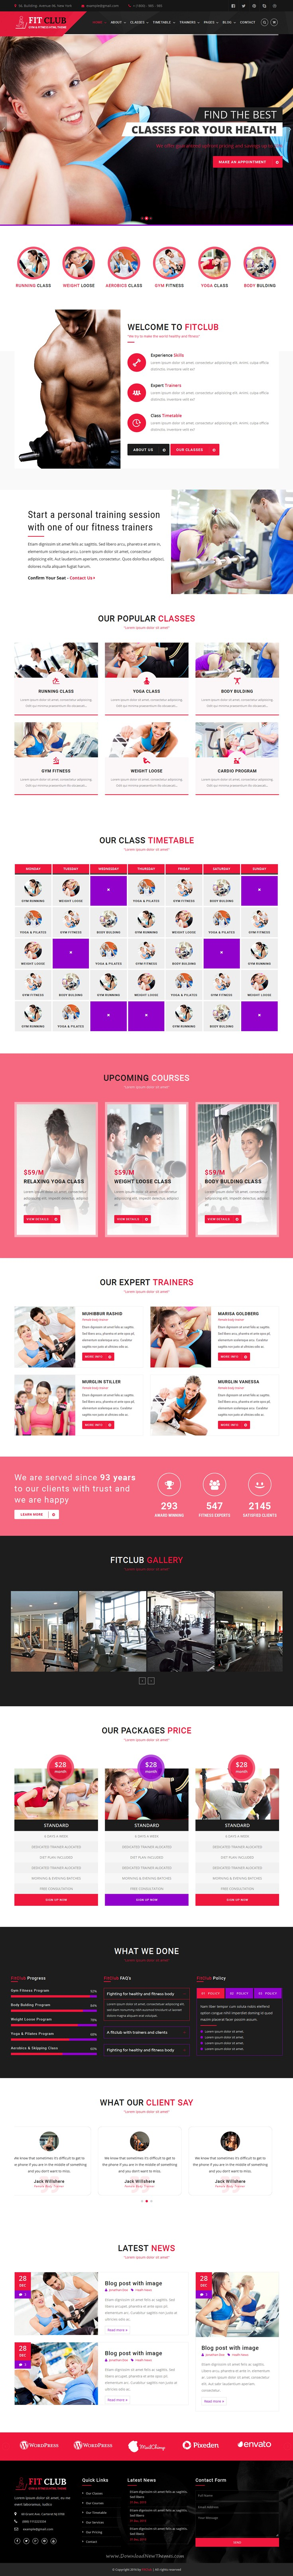 Fitclub  Sports Health Gym  Fitness Html Template  Fitness